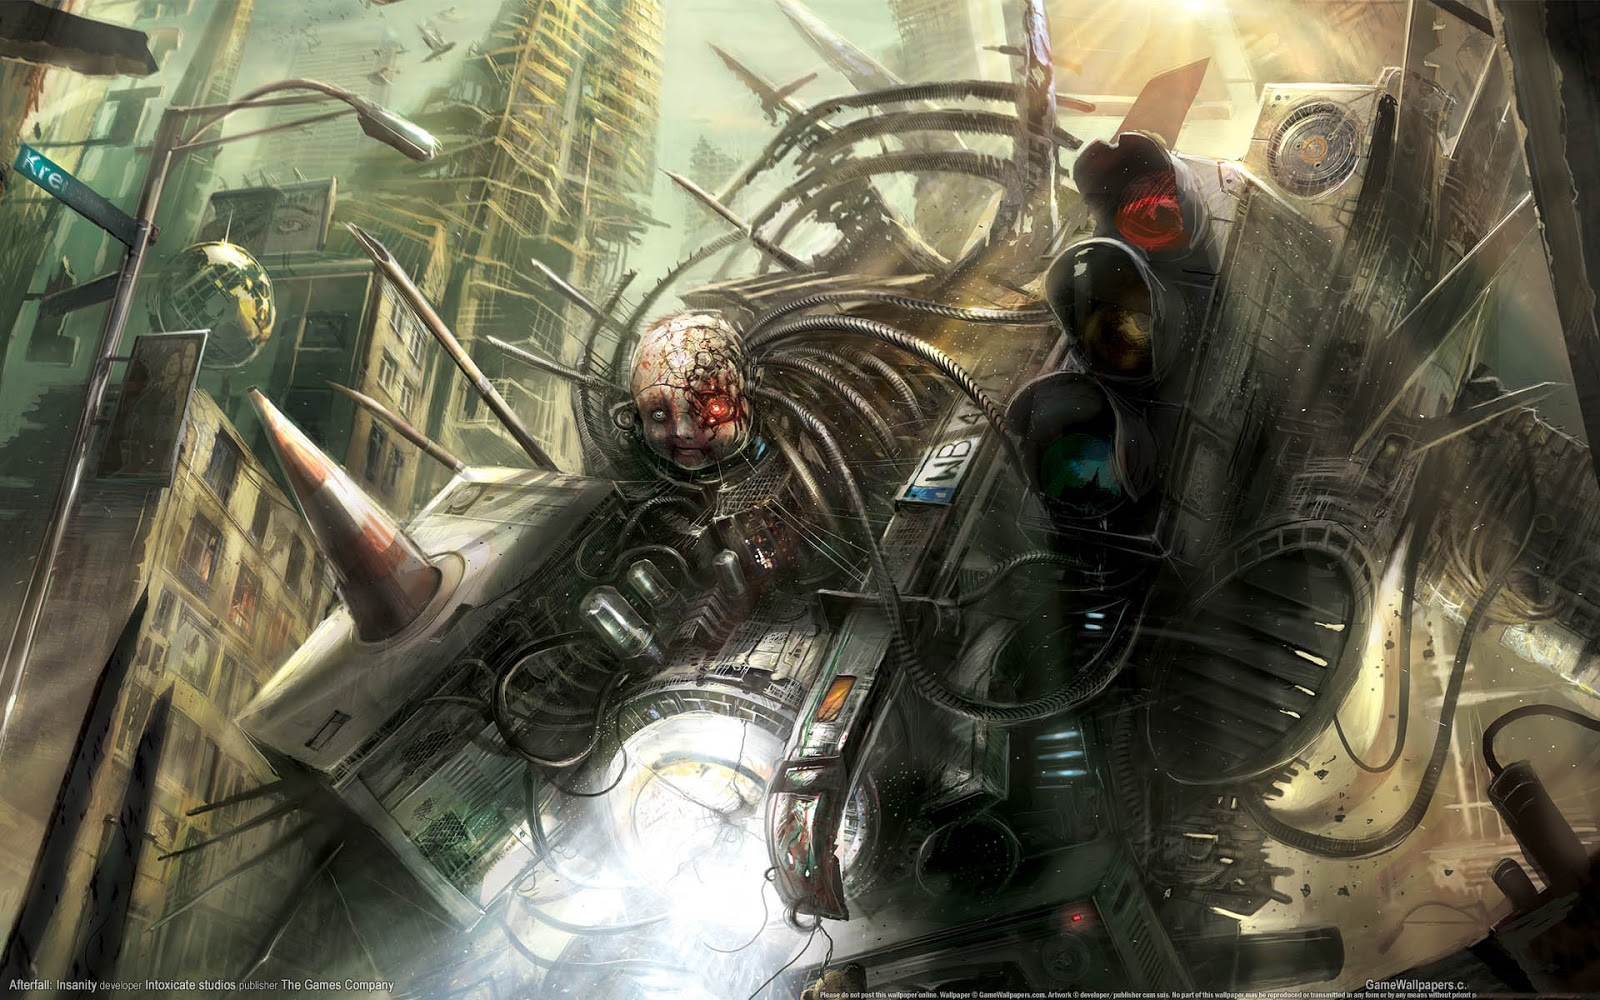 Hd games wallpapers 1920x1200 hd wallpapery - Games hd wallpapers 1920x1200 ...